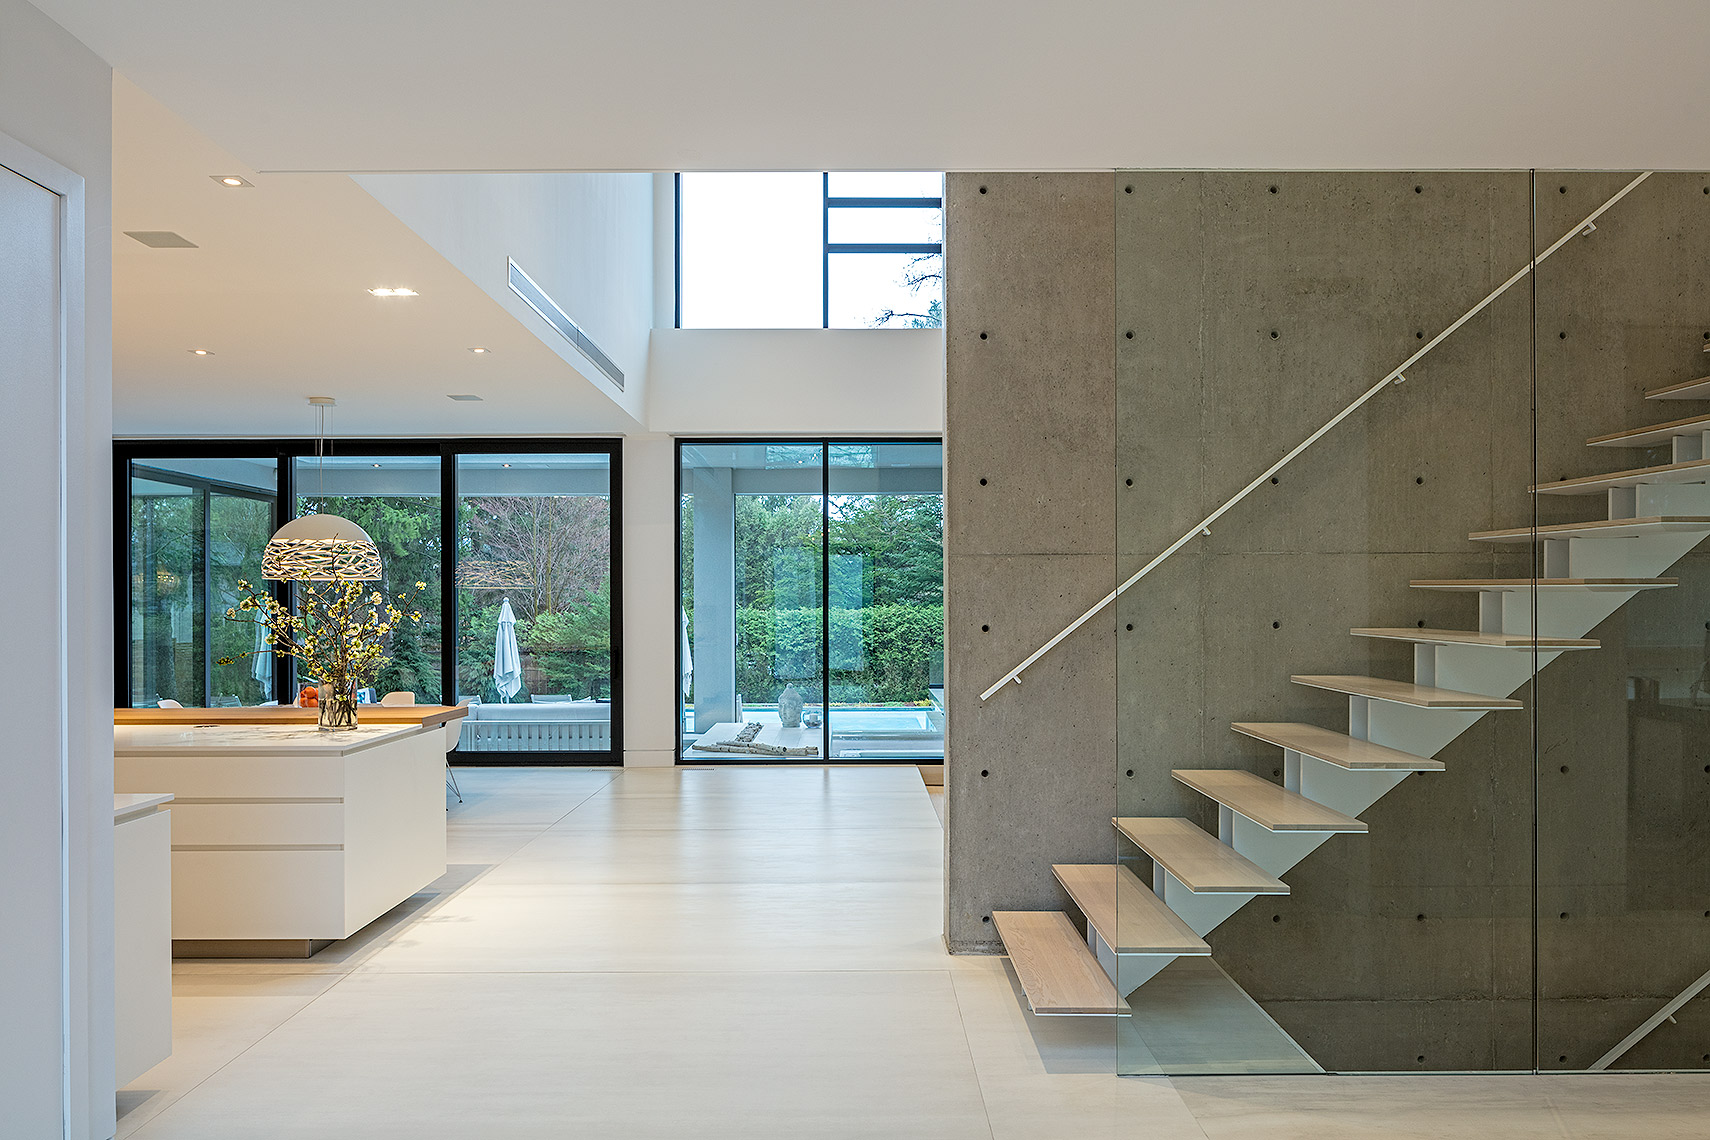 Floating staircase with concrete and glass walls looking in to the kitchen